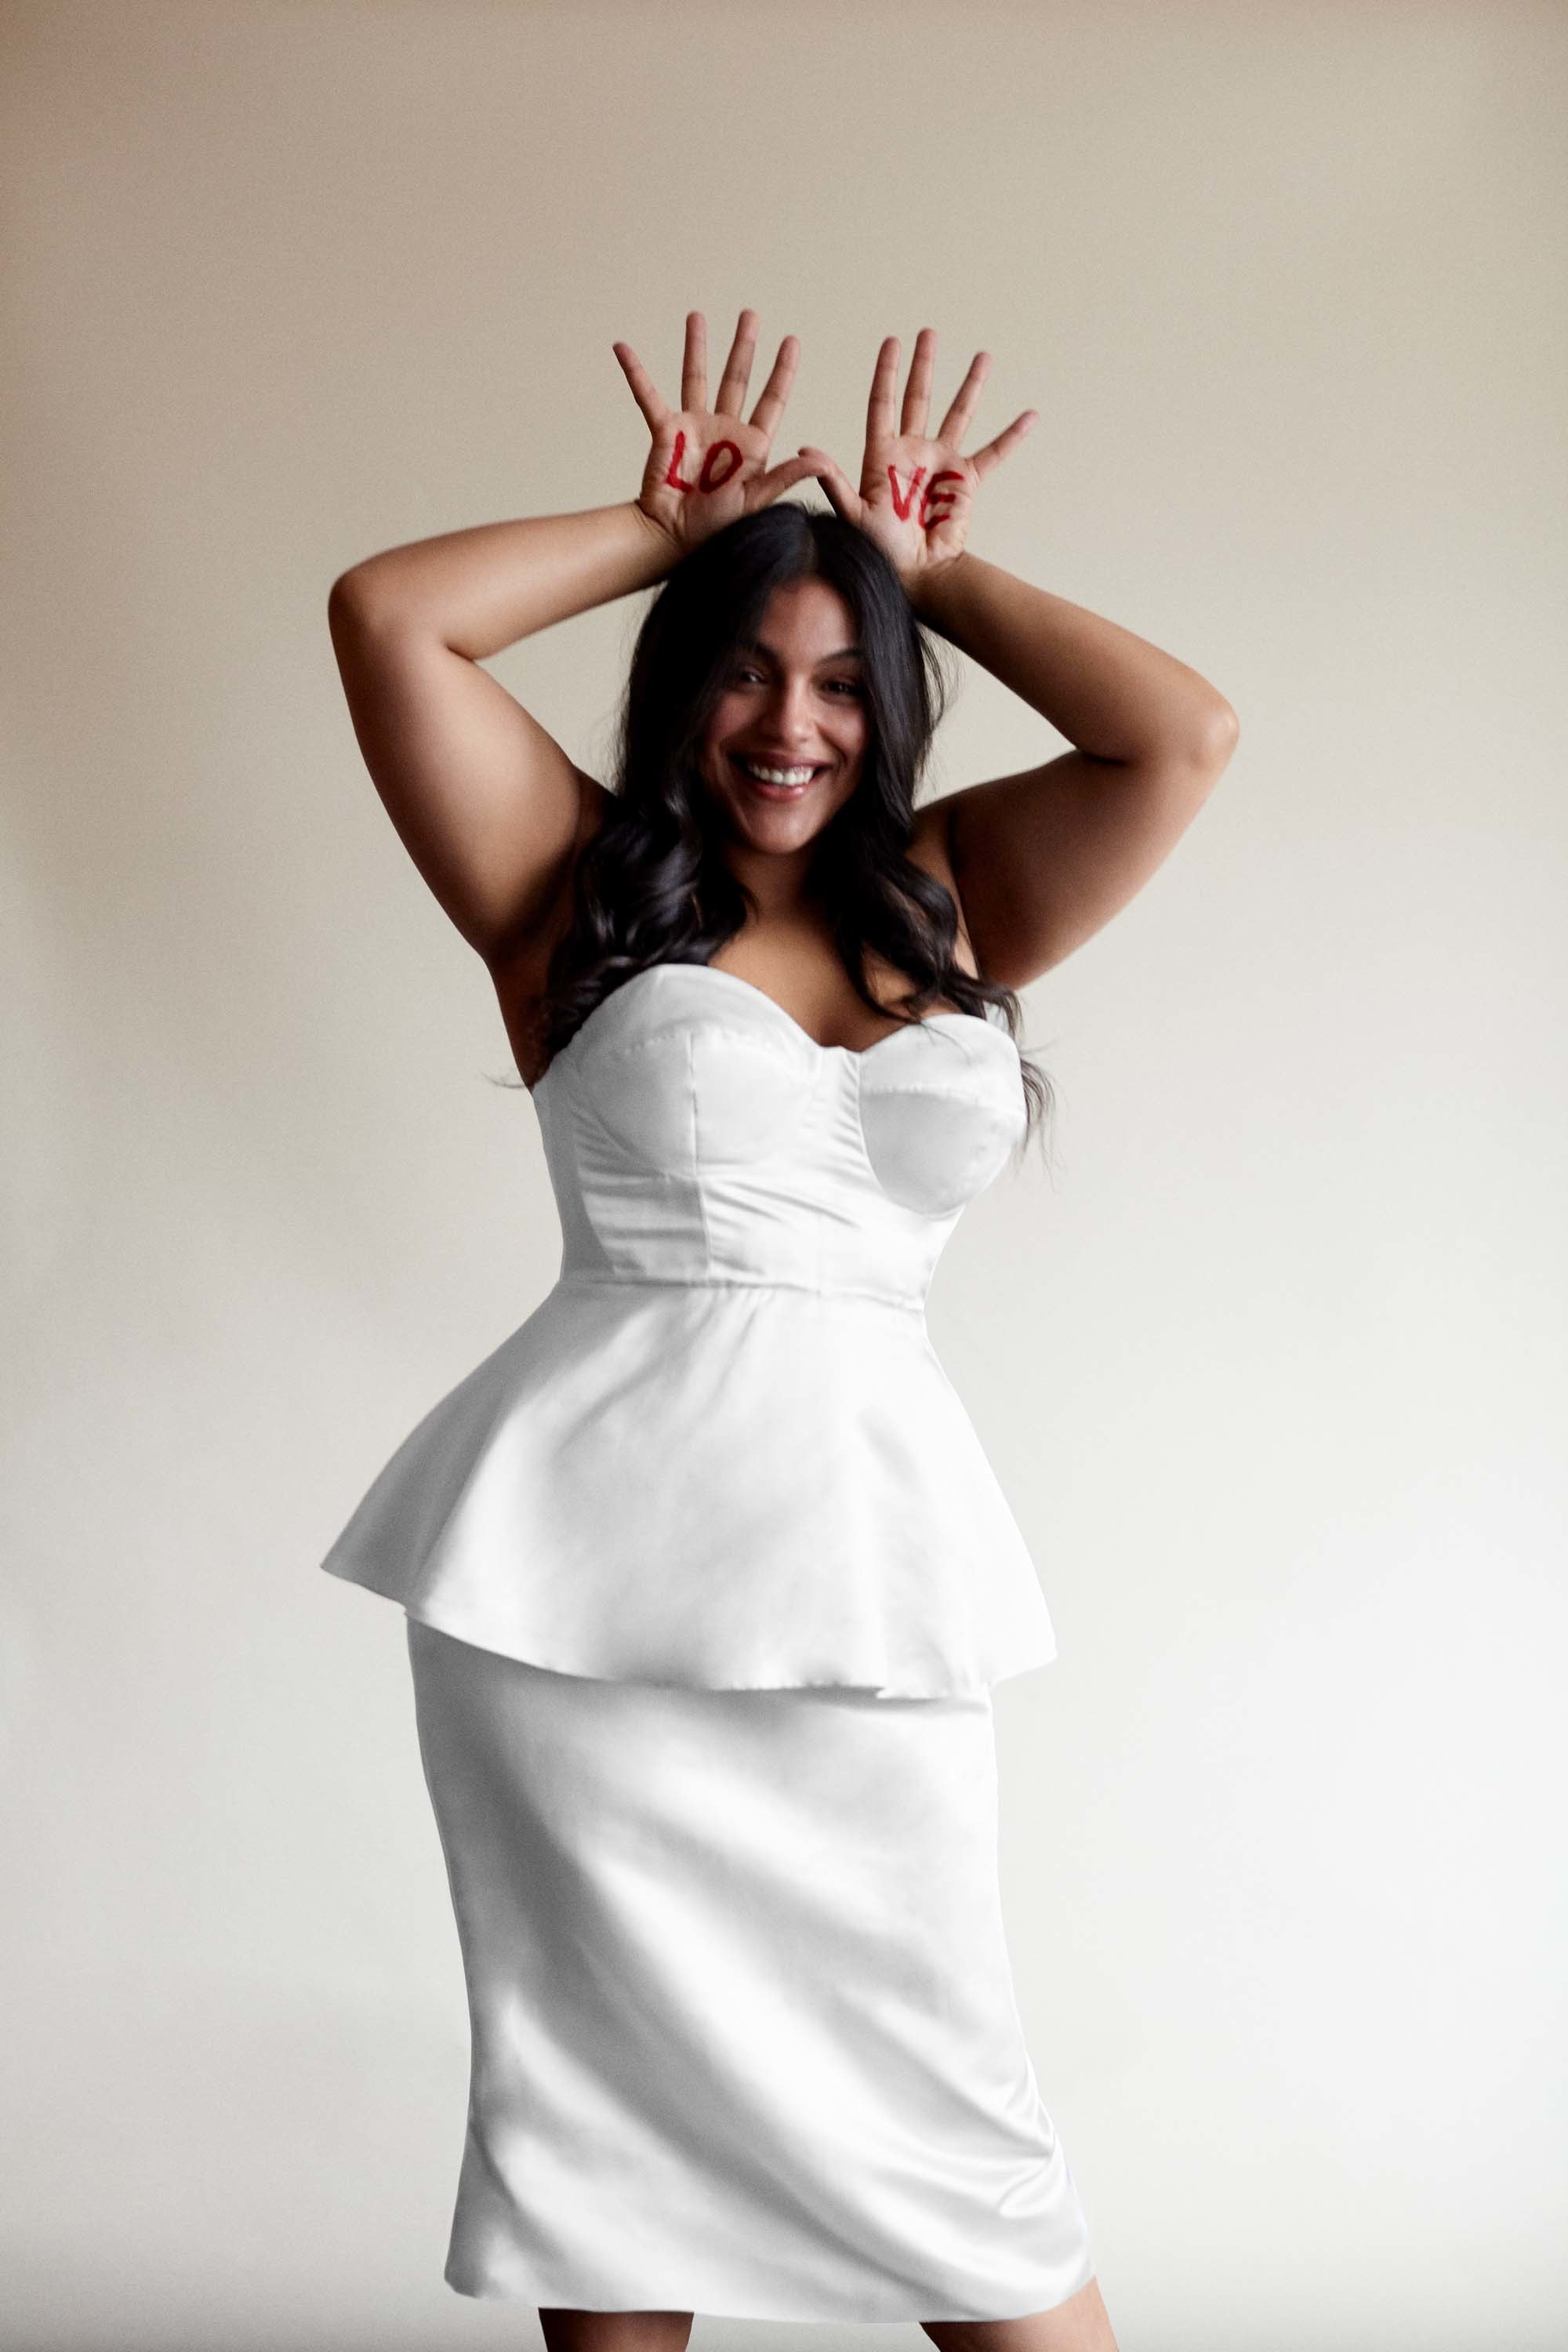 05-stone-fox-bride-plus-size.jpg